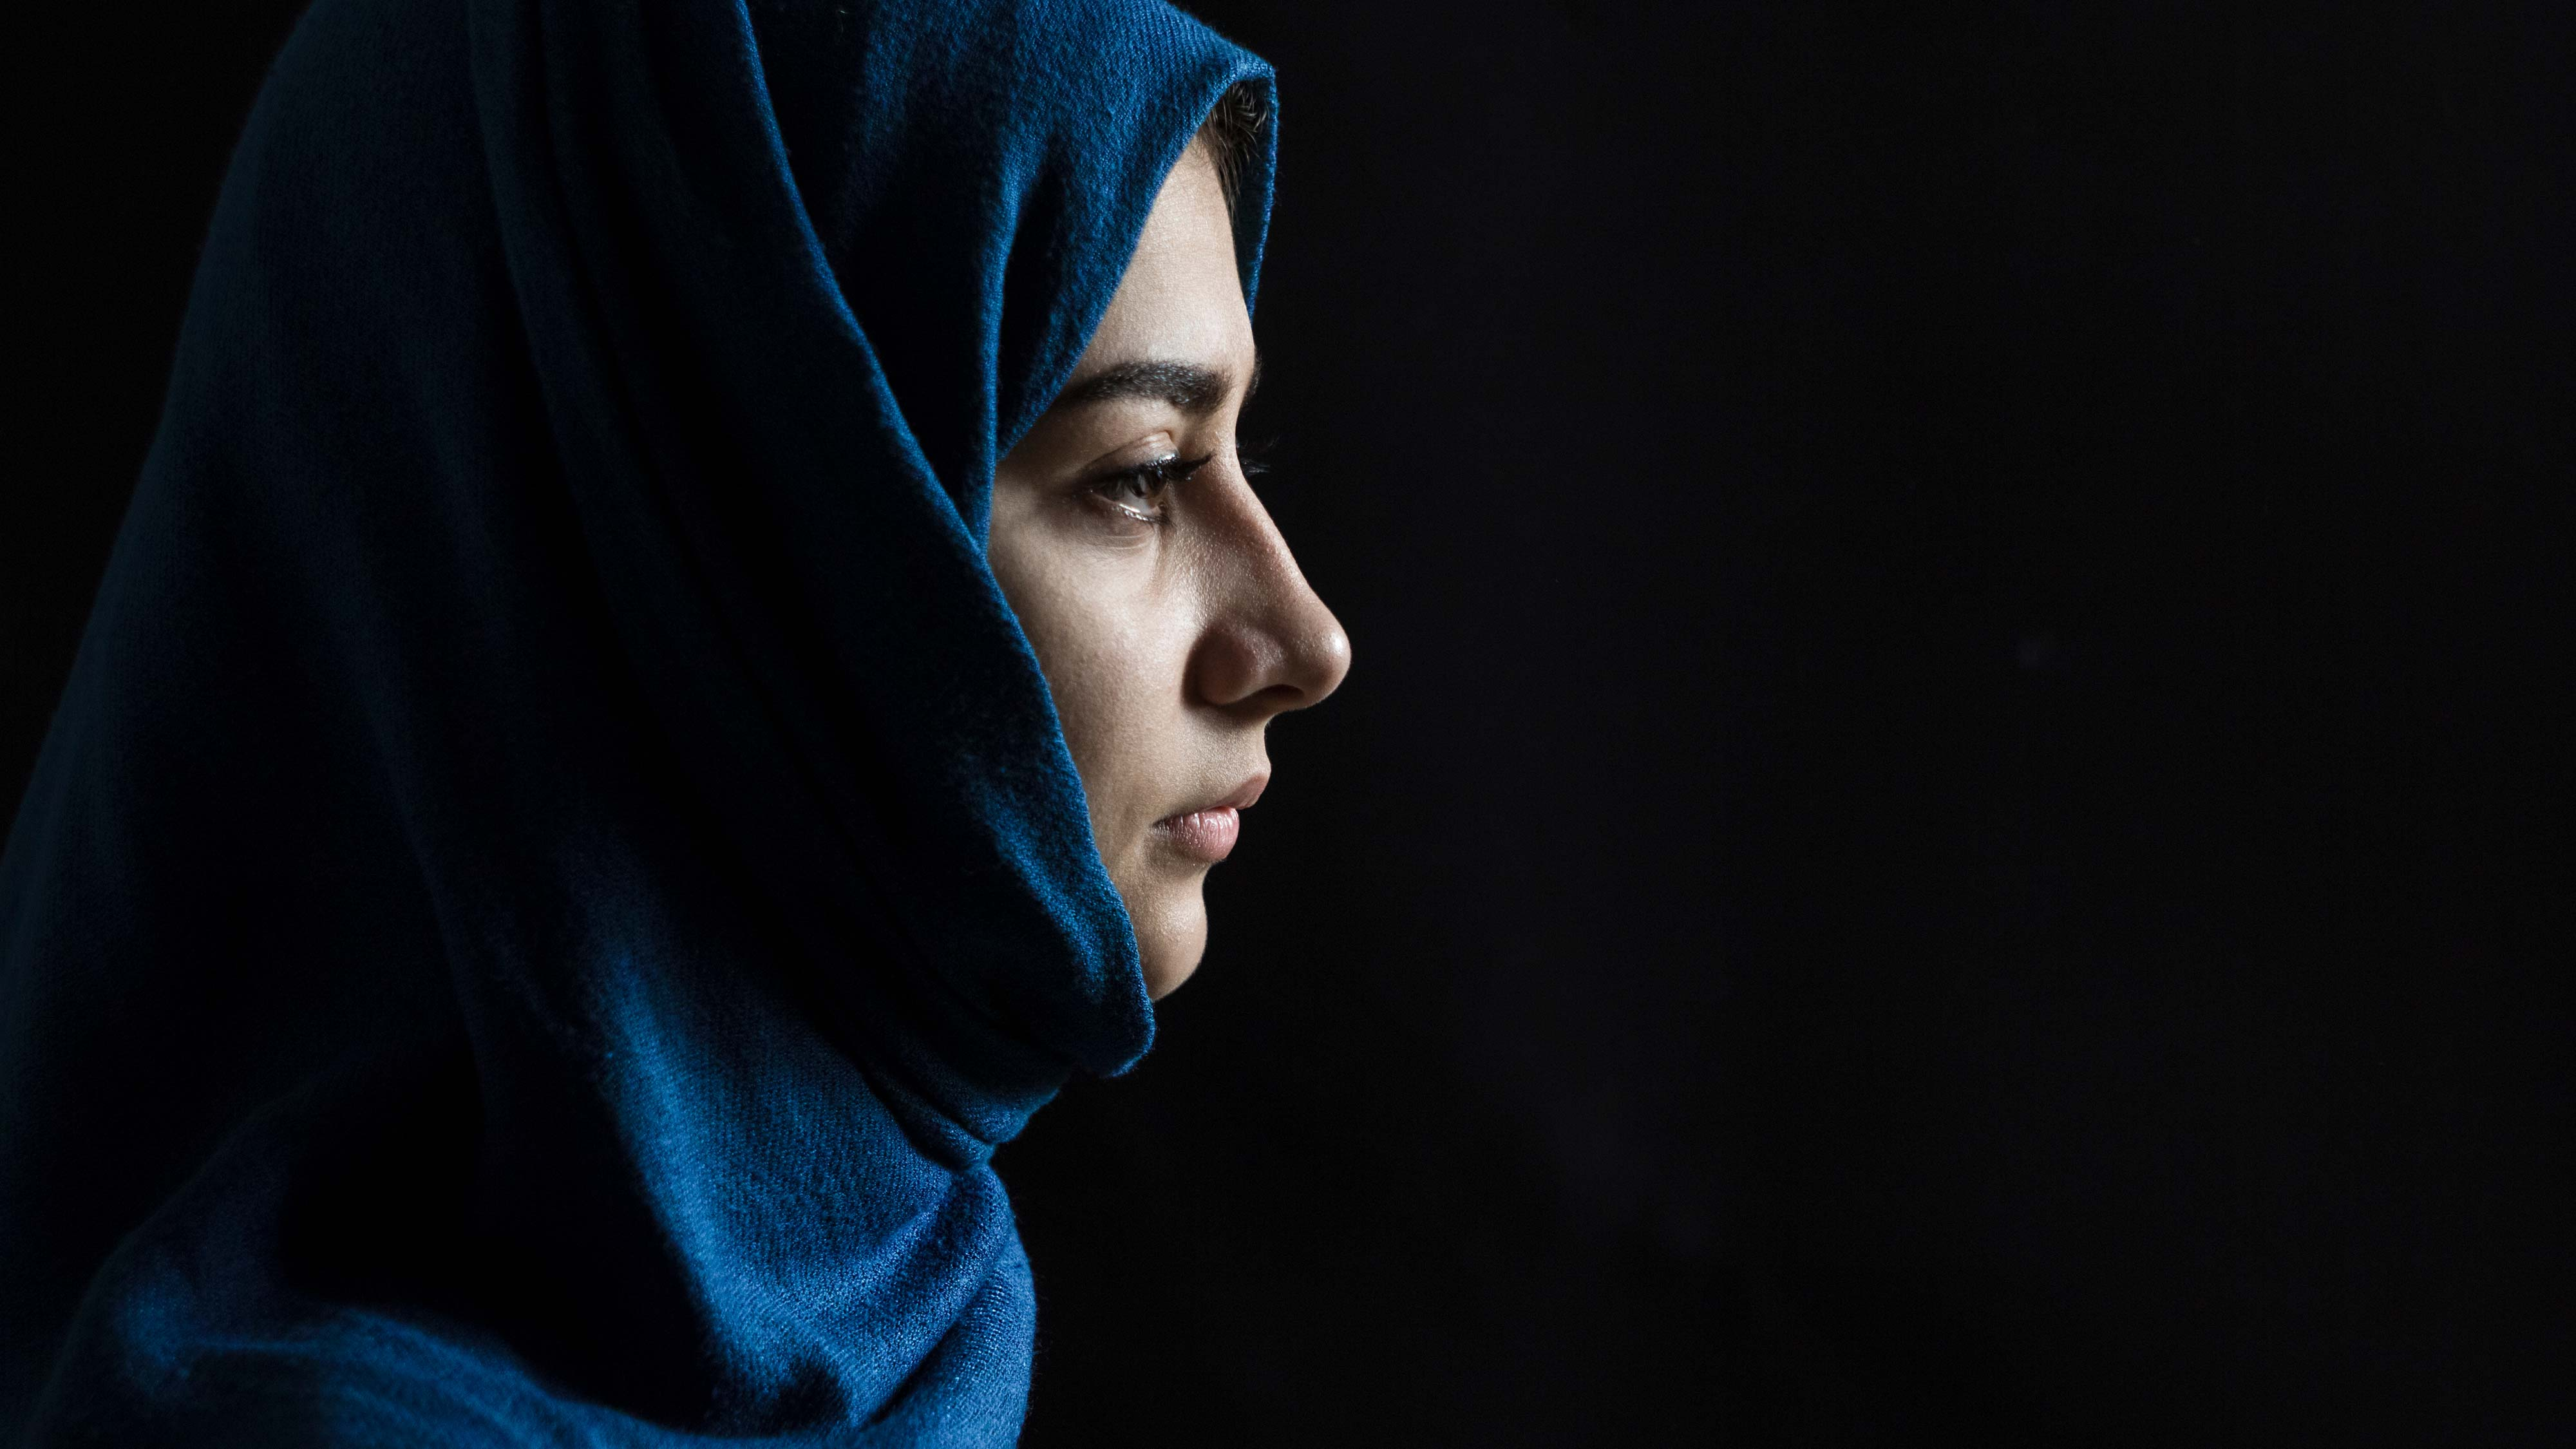 Hijab, Gendered Islamophobia, and the Lived Experiences of Muslim Women